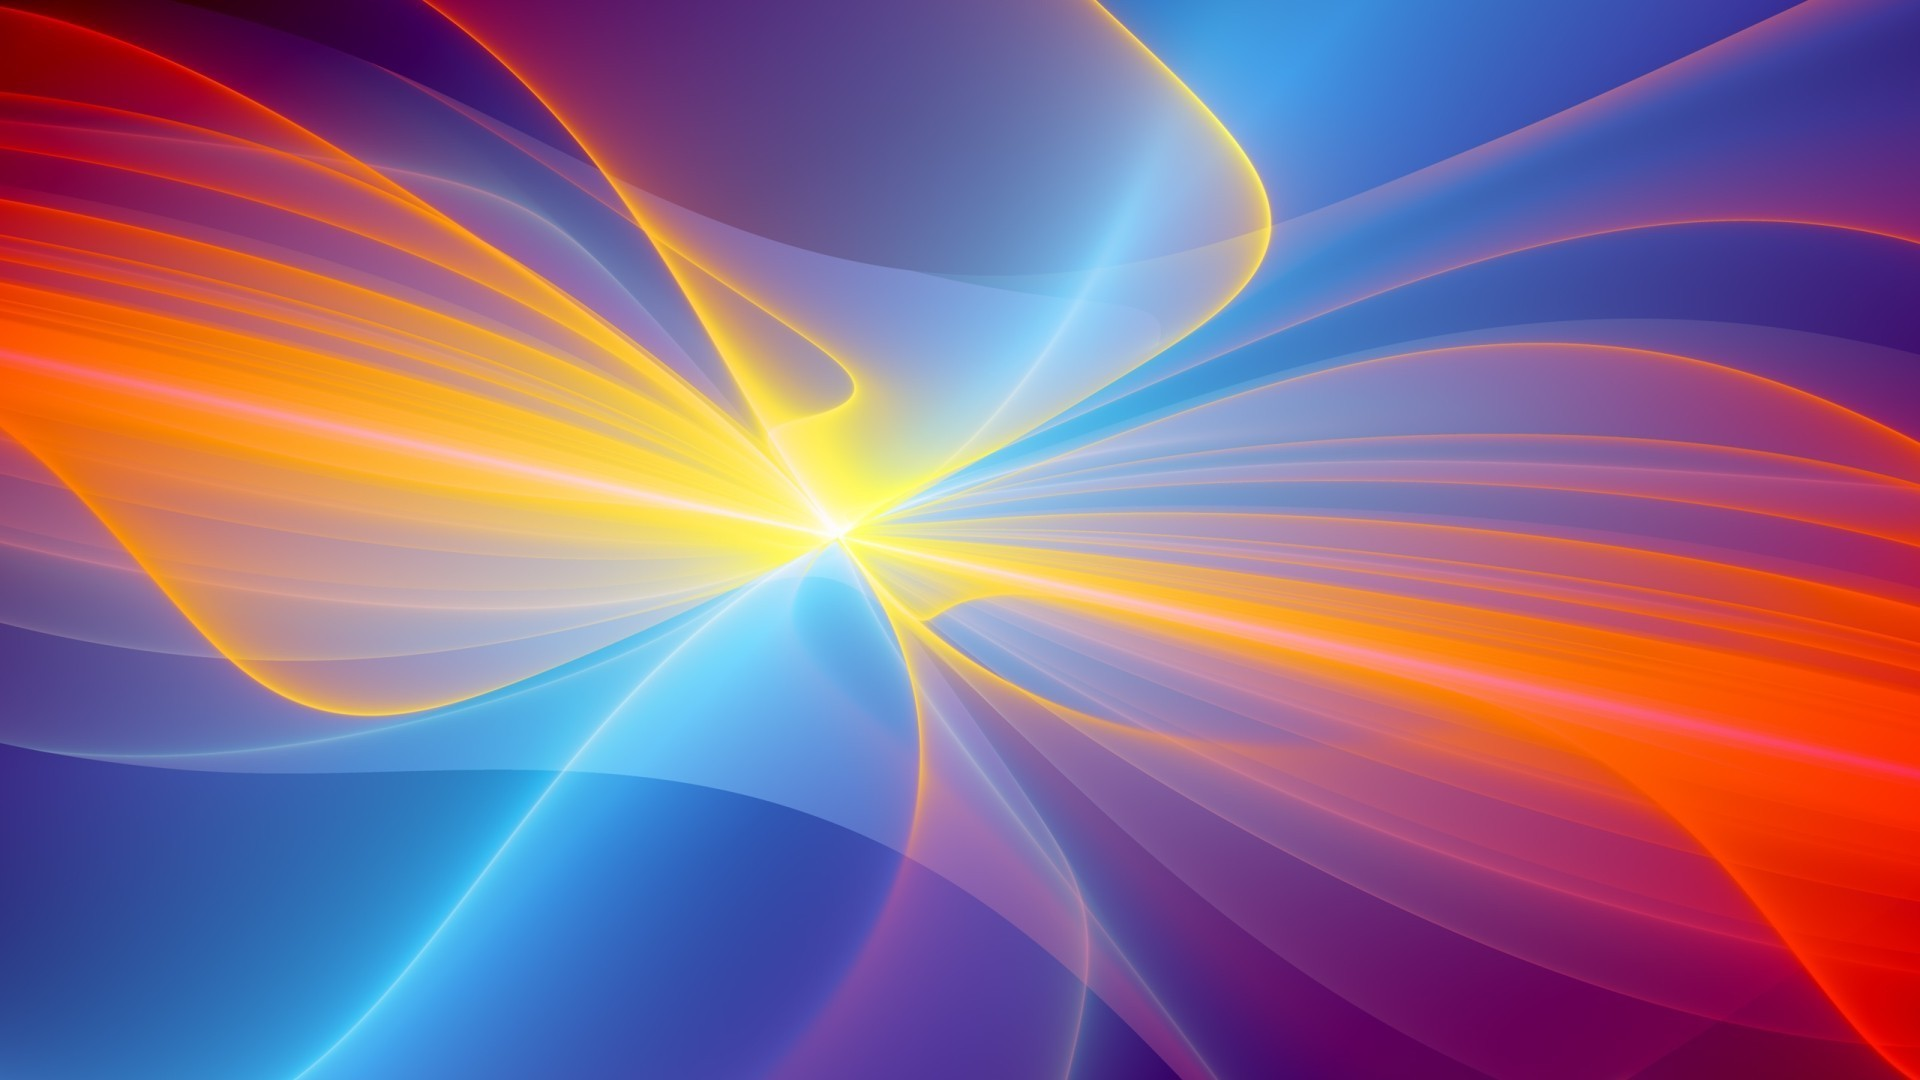 Colorful d Abstract Desktop Backgrounds Search free wallpapers on